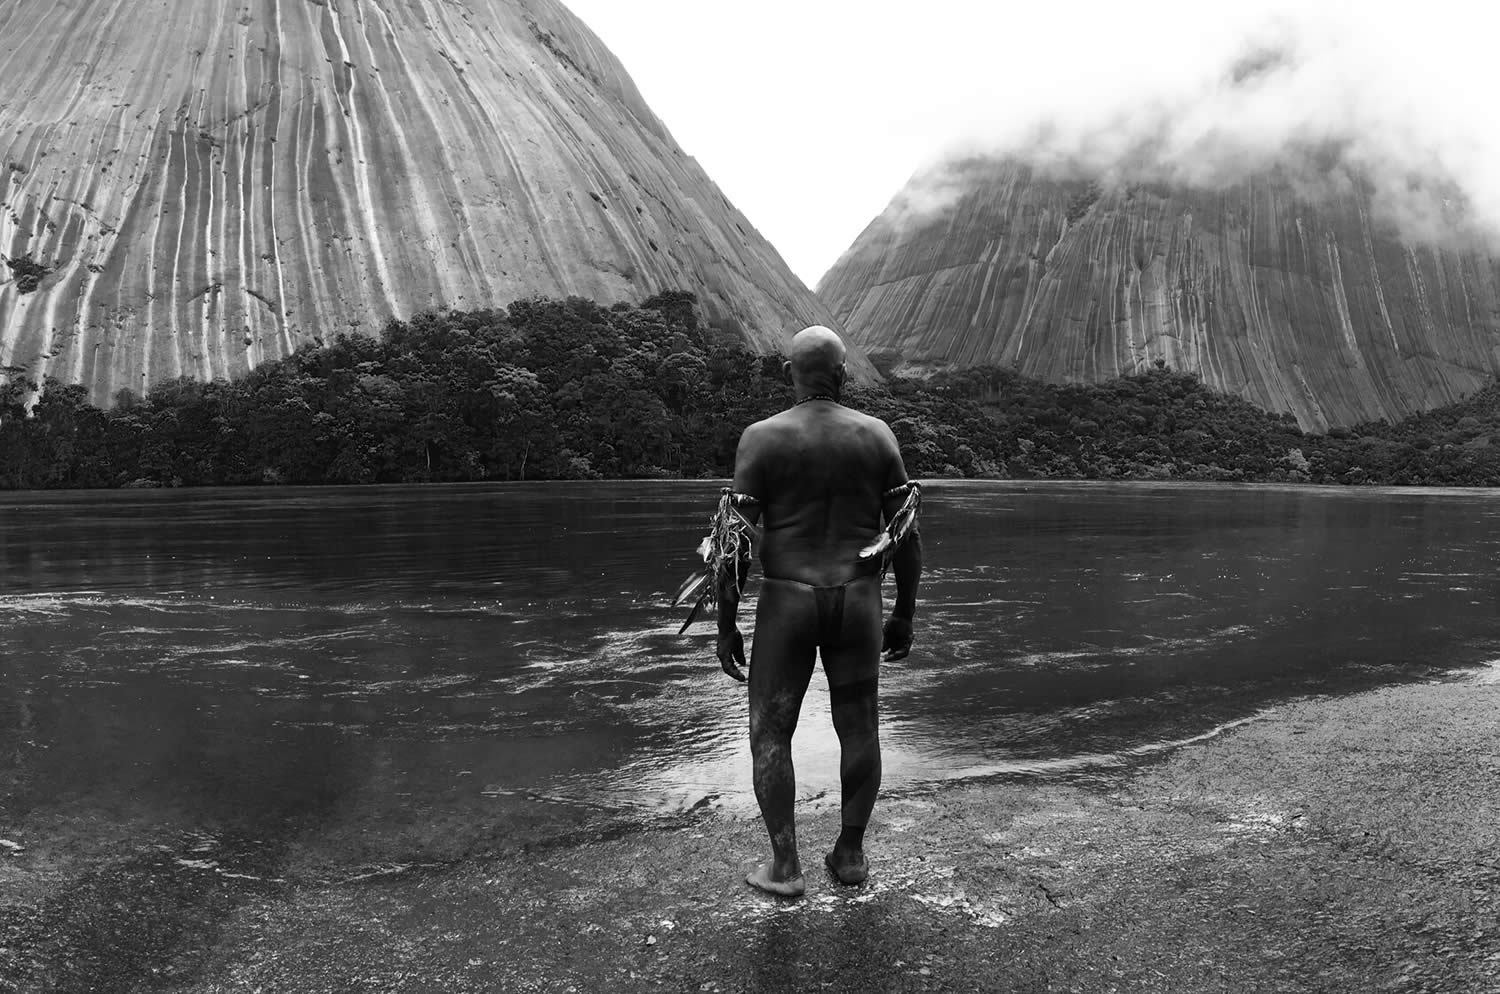 indian in front of volcano, Embrace of the Serpent